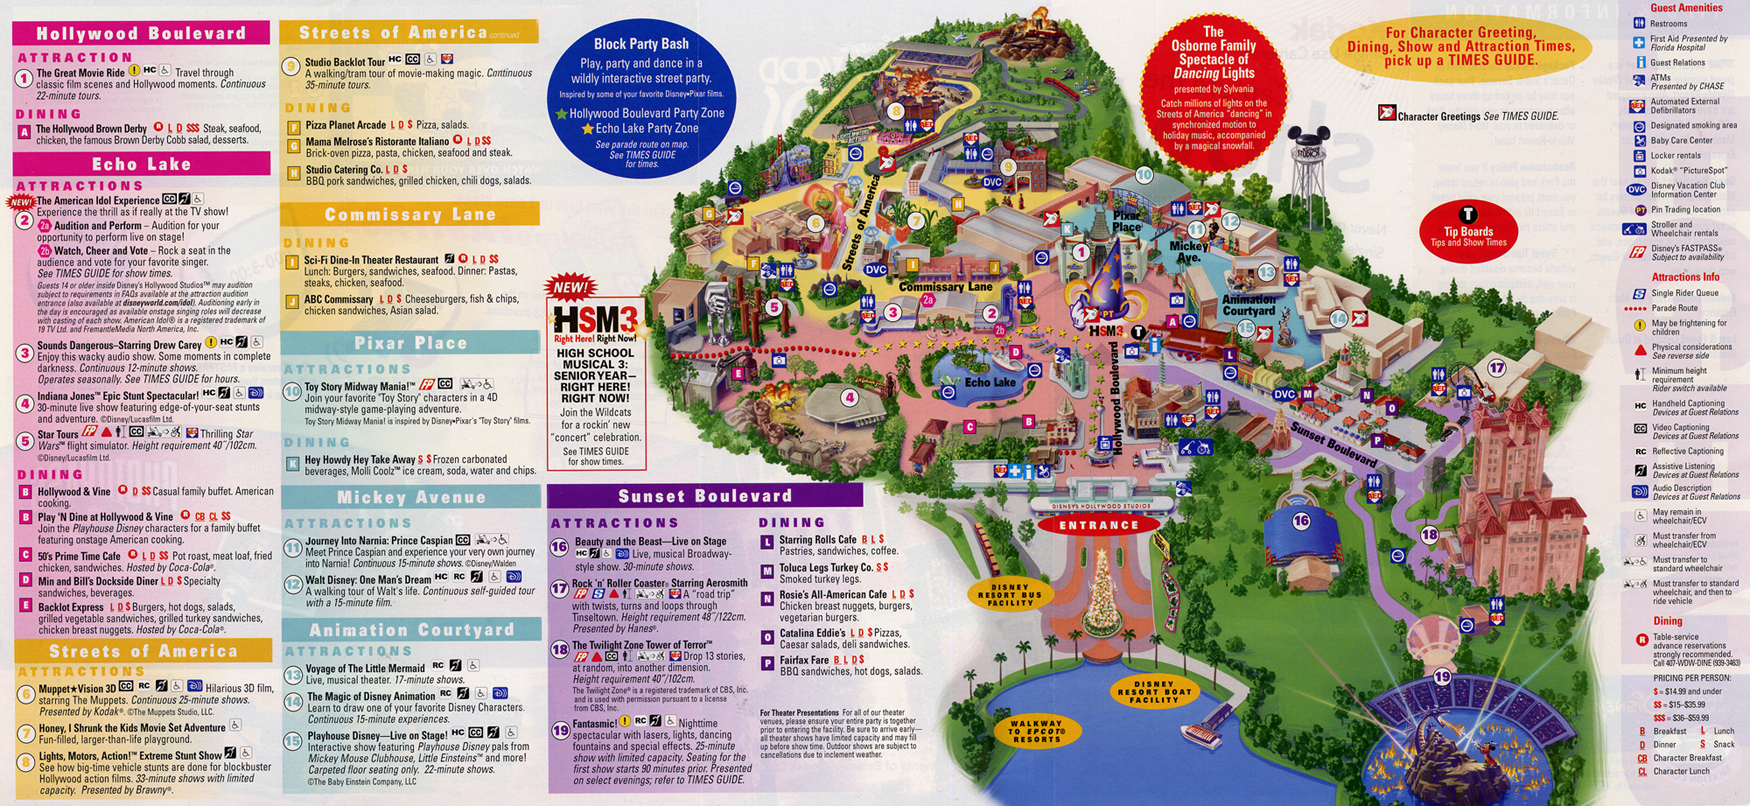 Printable Disney Hollywood Studios Map 2016 | Calendar Template 2016